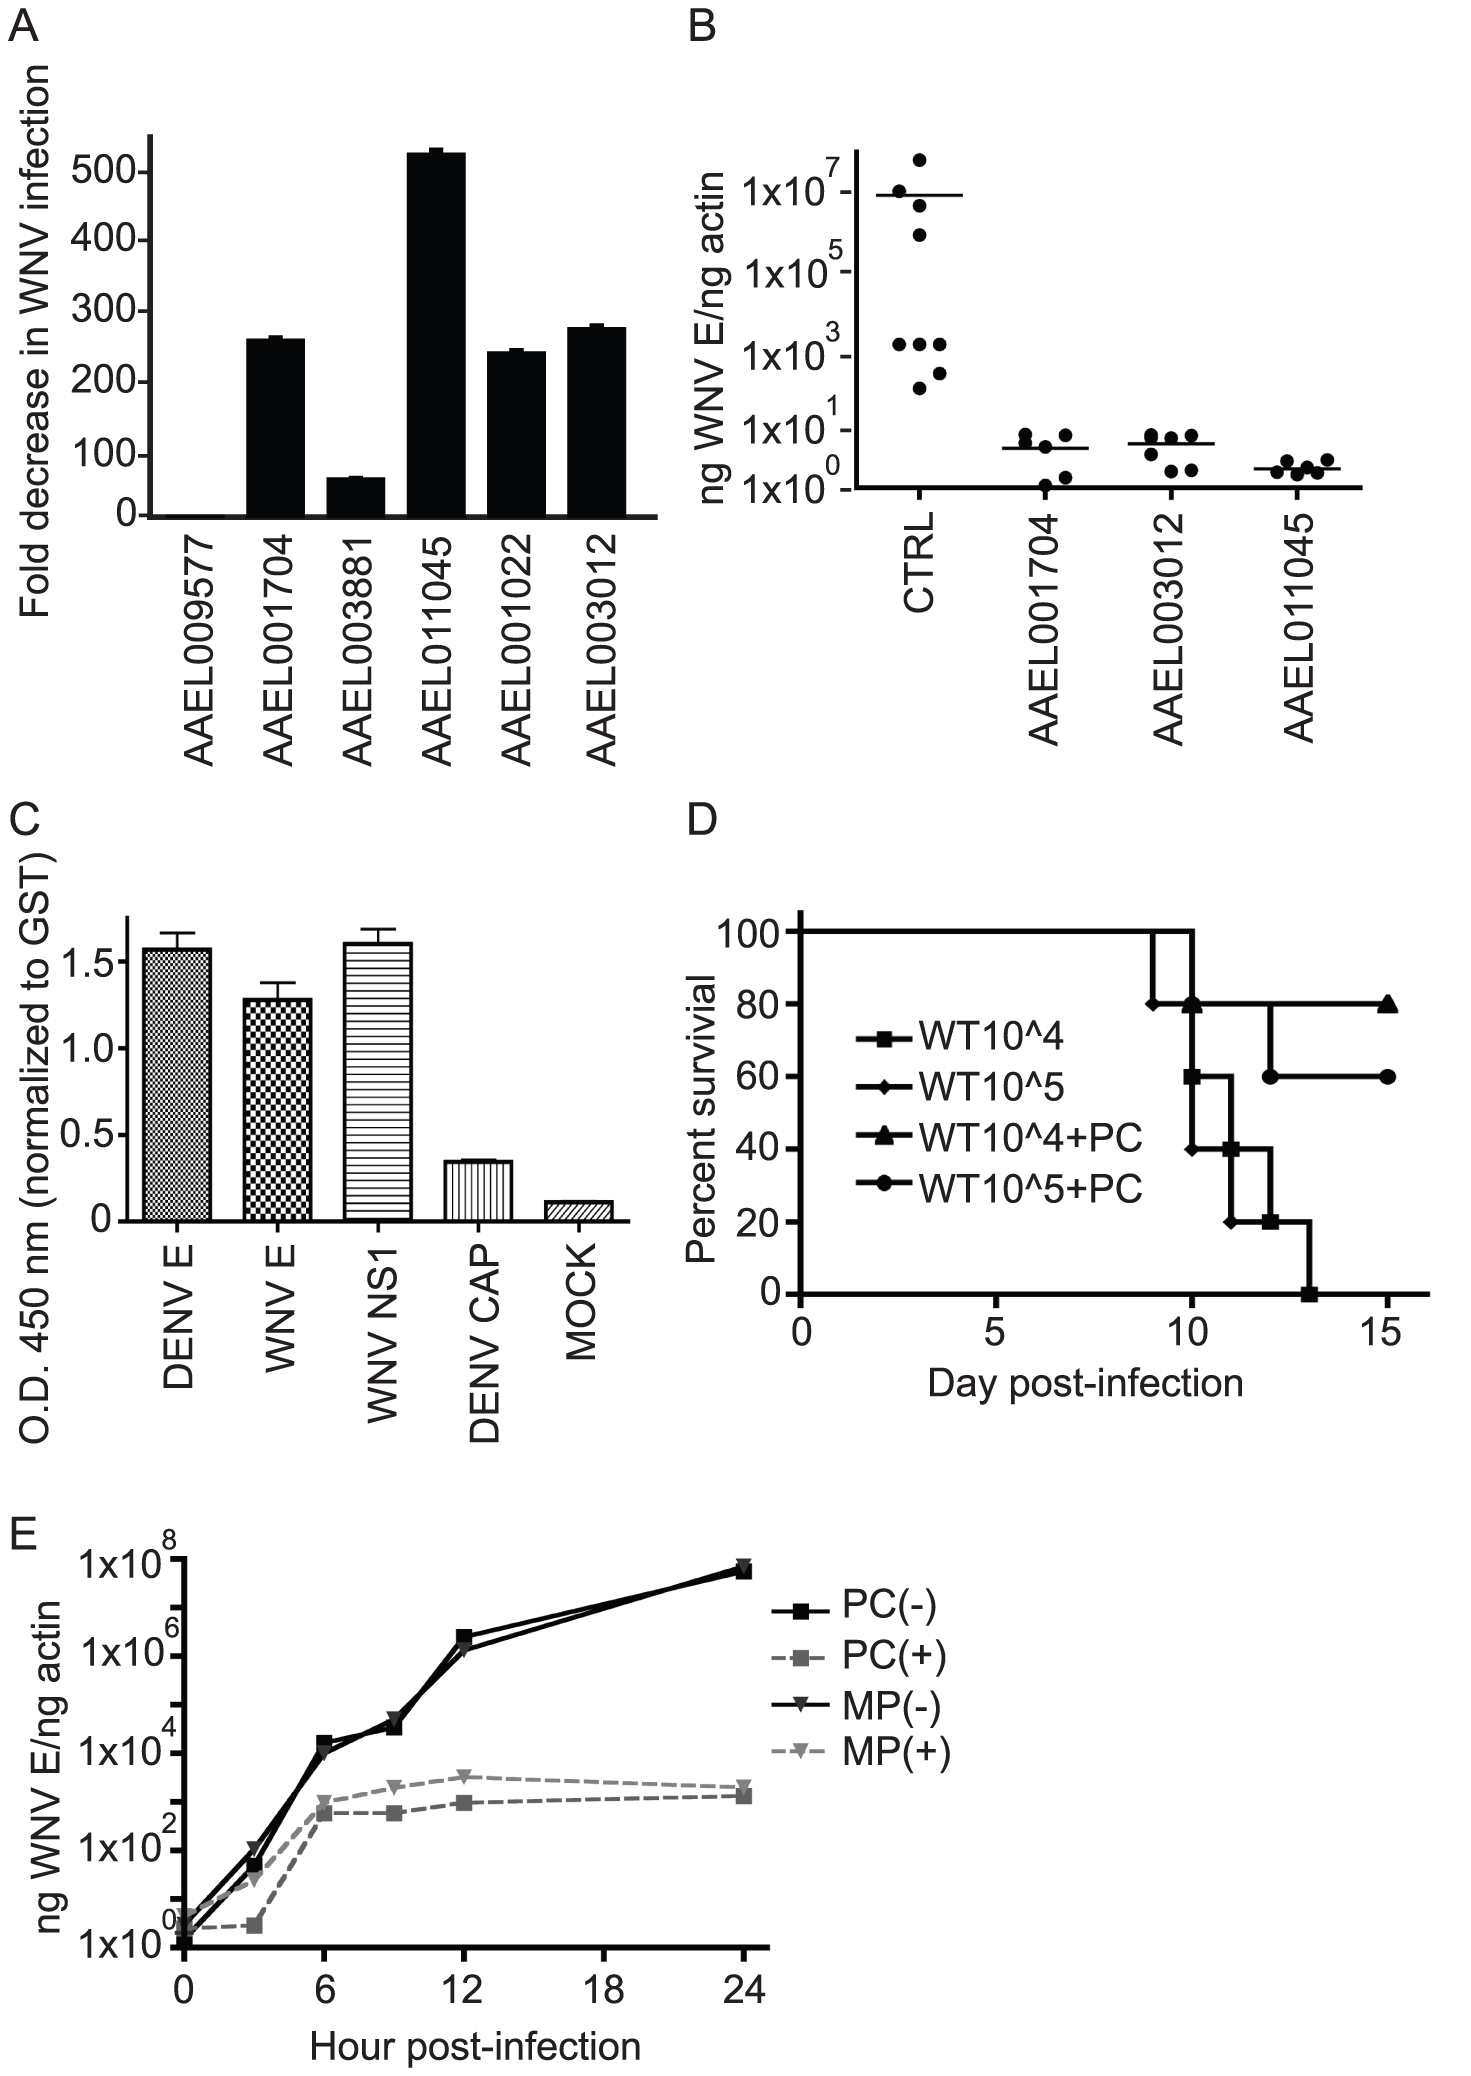 Overexpression of virally down-regulated genes impairs WNV infectivity.